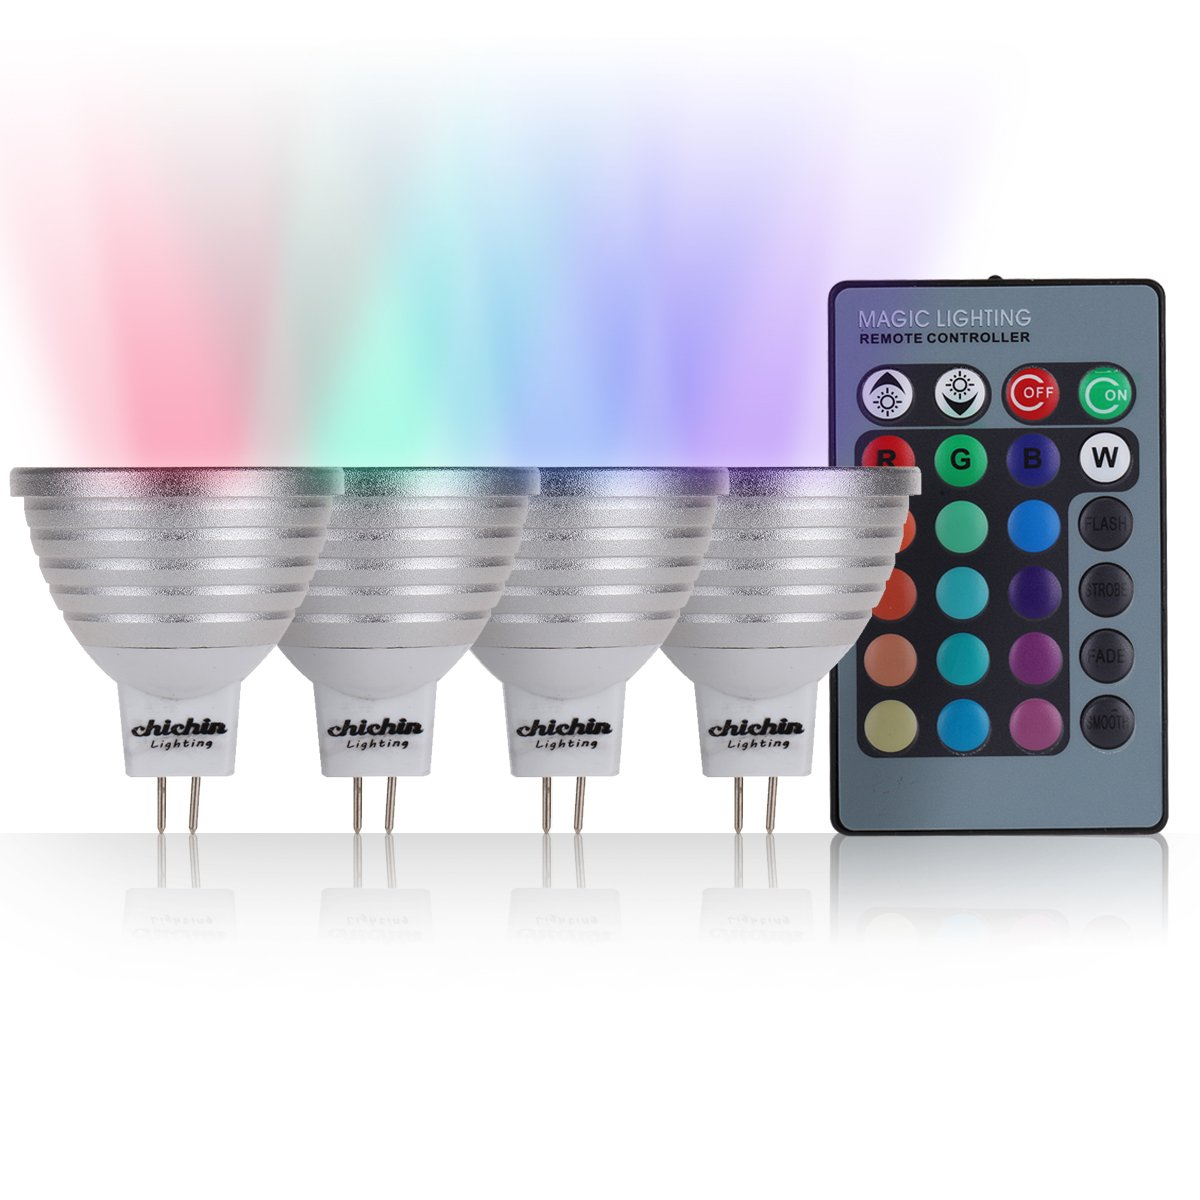 ChiChinLighting 4-Pack Color Changing Lights Mr16 Base 12 volt RGB Spotlight, 4 Color Changing led bulb controlled by one wireless 19-26 ft Long Distance Remote Controller and RGB led bulbs ChiChin International